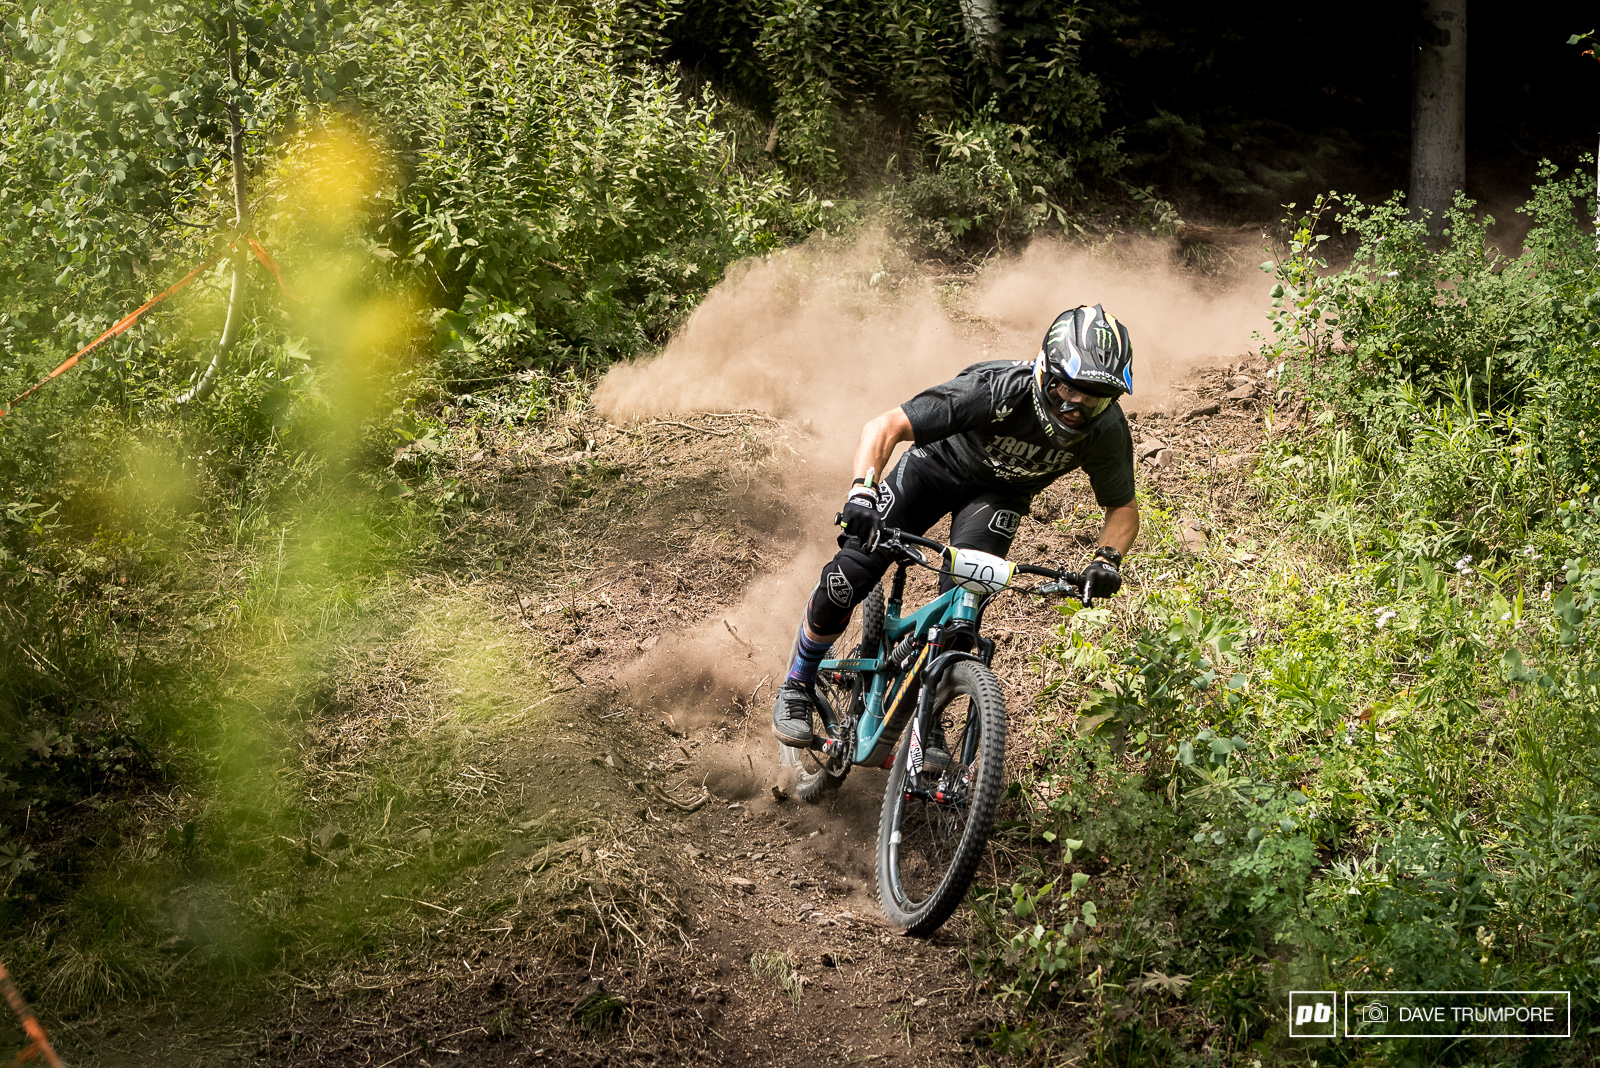 Utah resident Mitch Ropelato knows how to ride the loose Colorado dirt and has drifted his way right up into 17th.